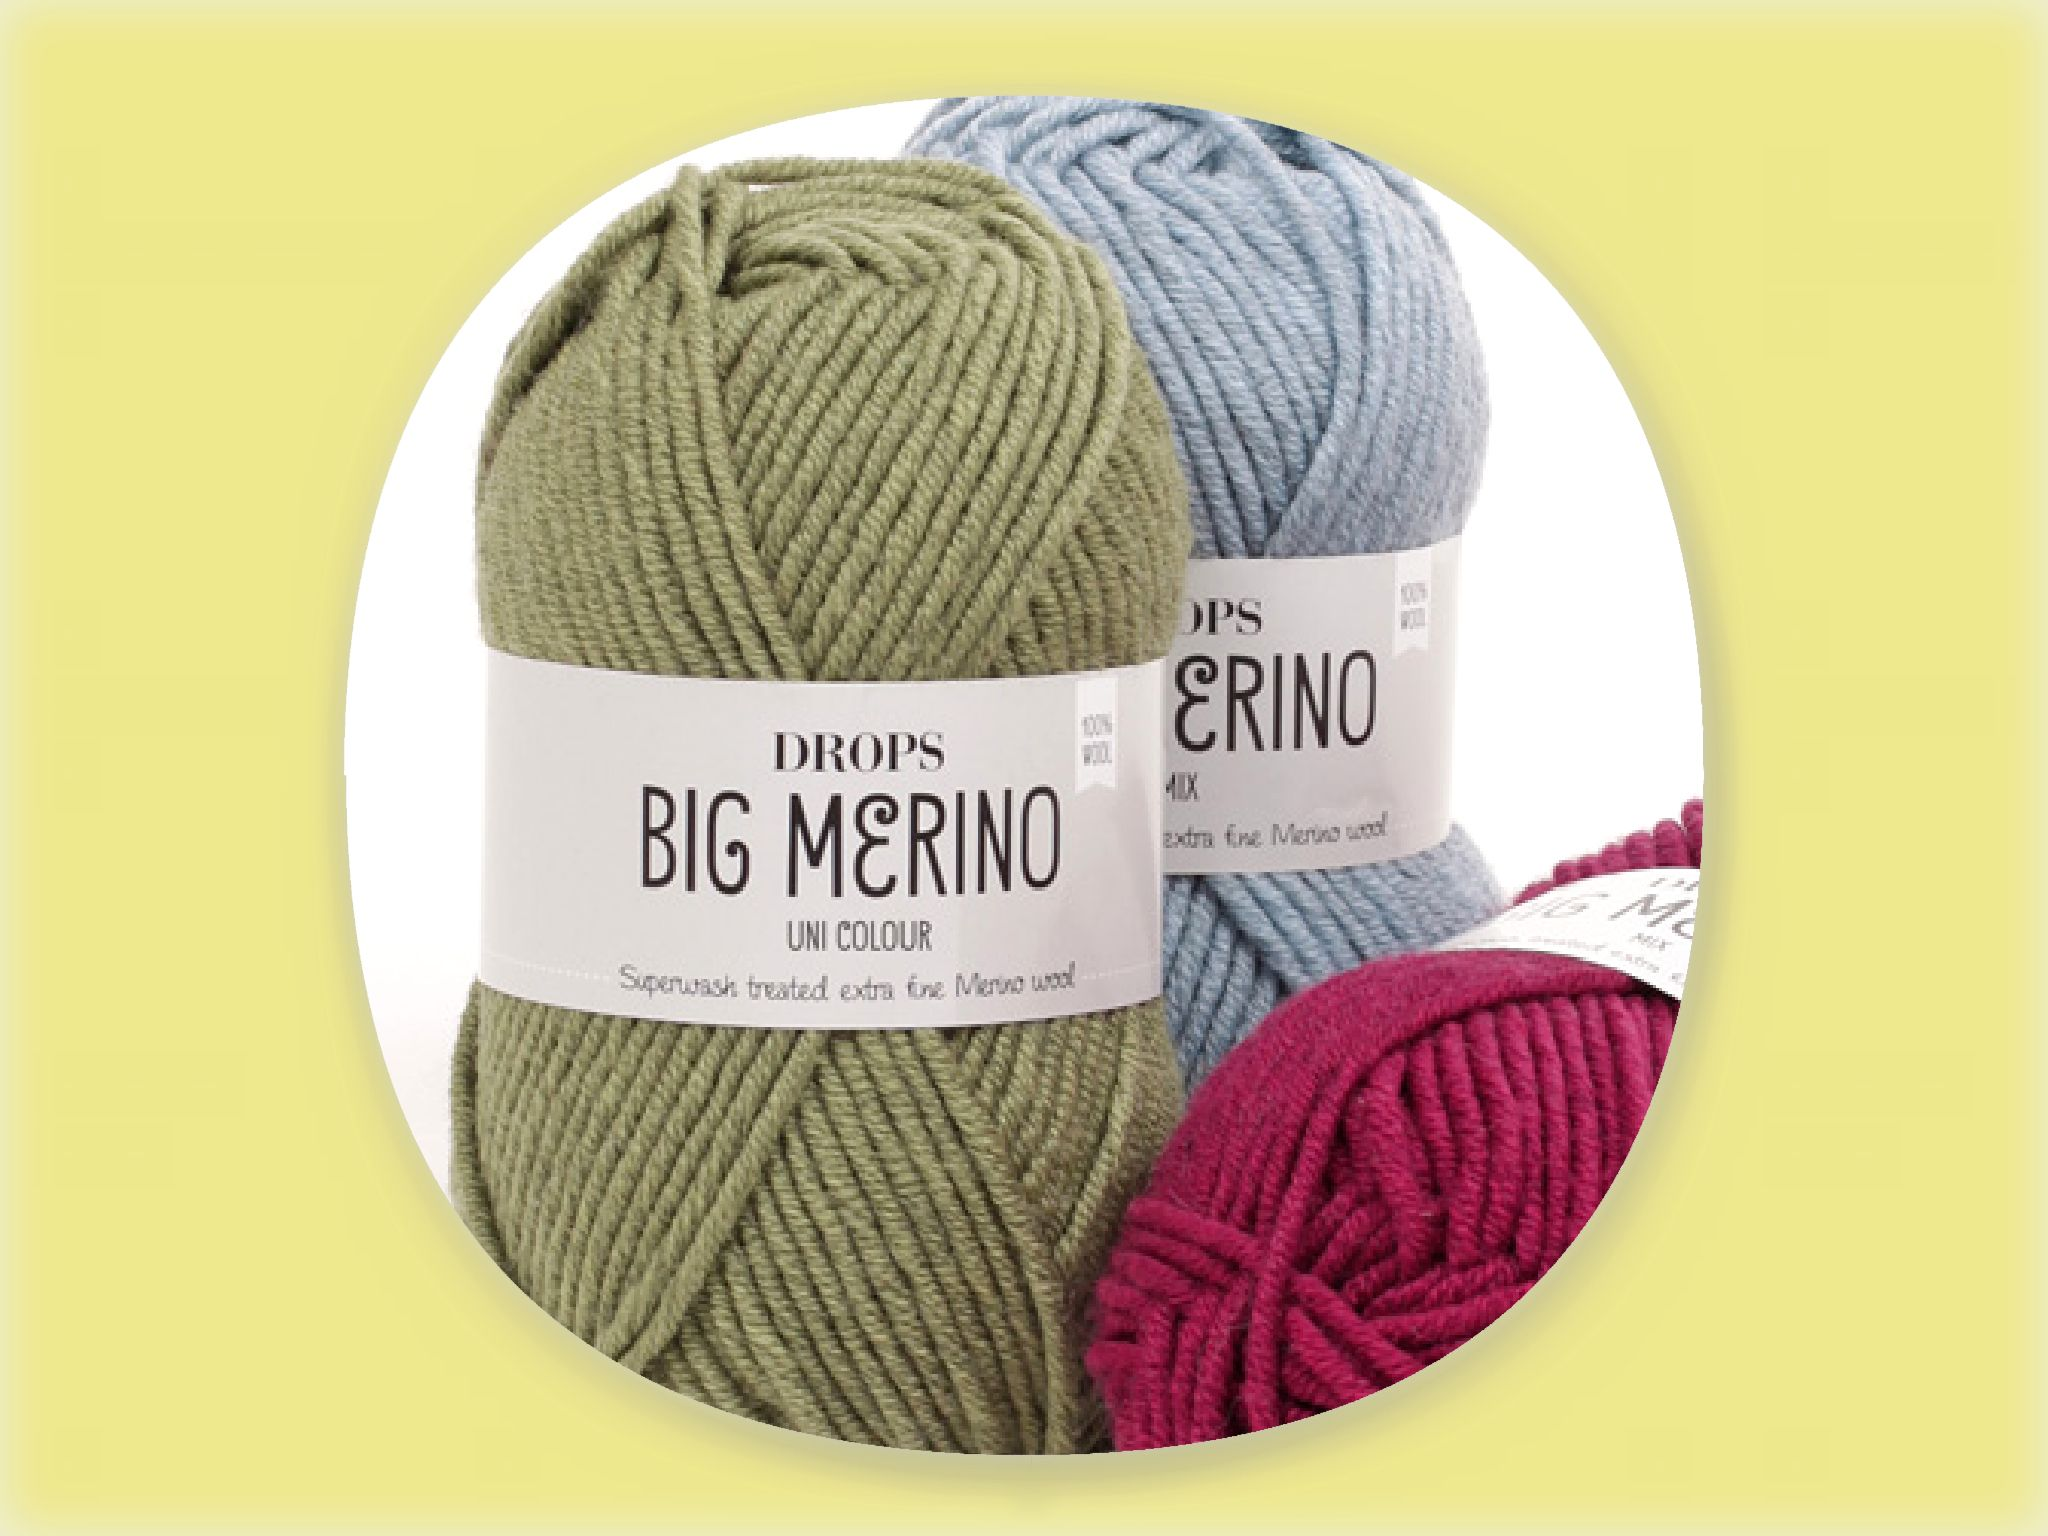 DROPS Big Merino Uni Colour